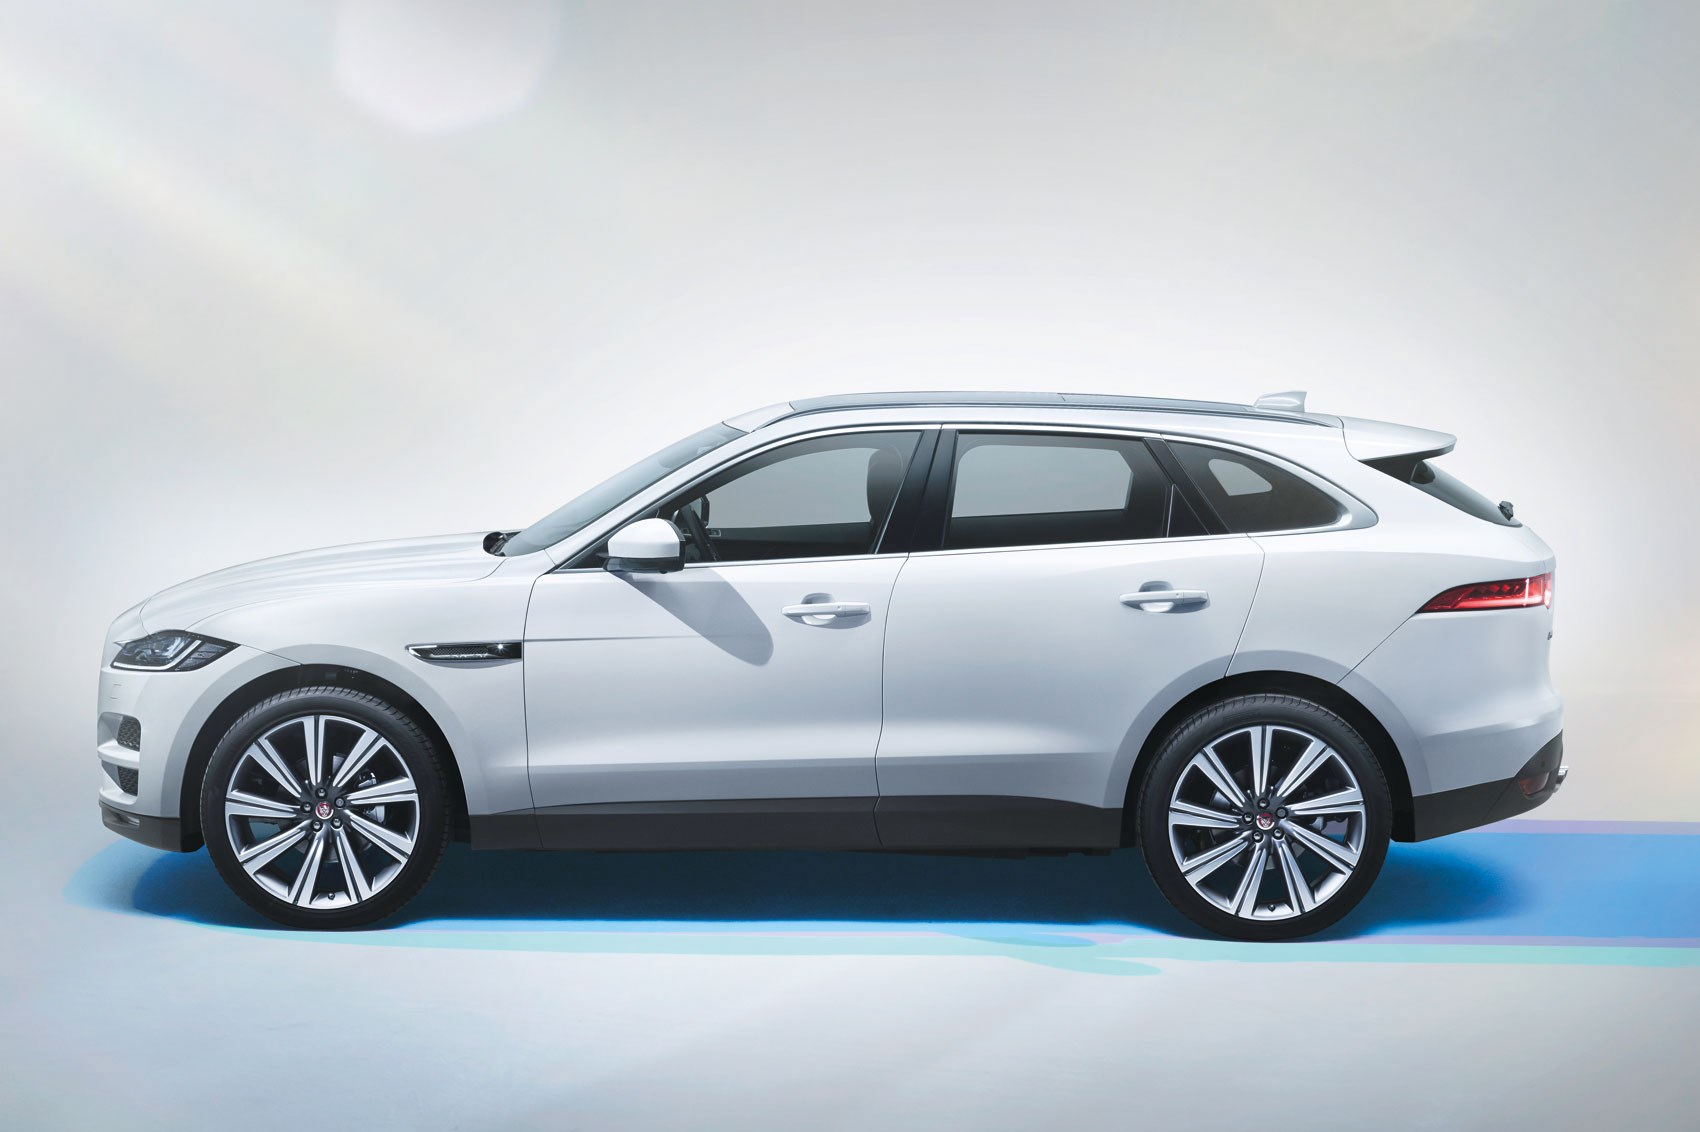 new jaguar car c release date and price specs crossover interior review